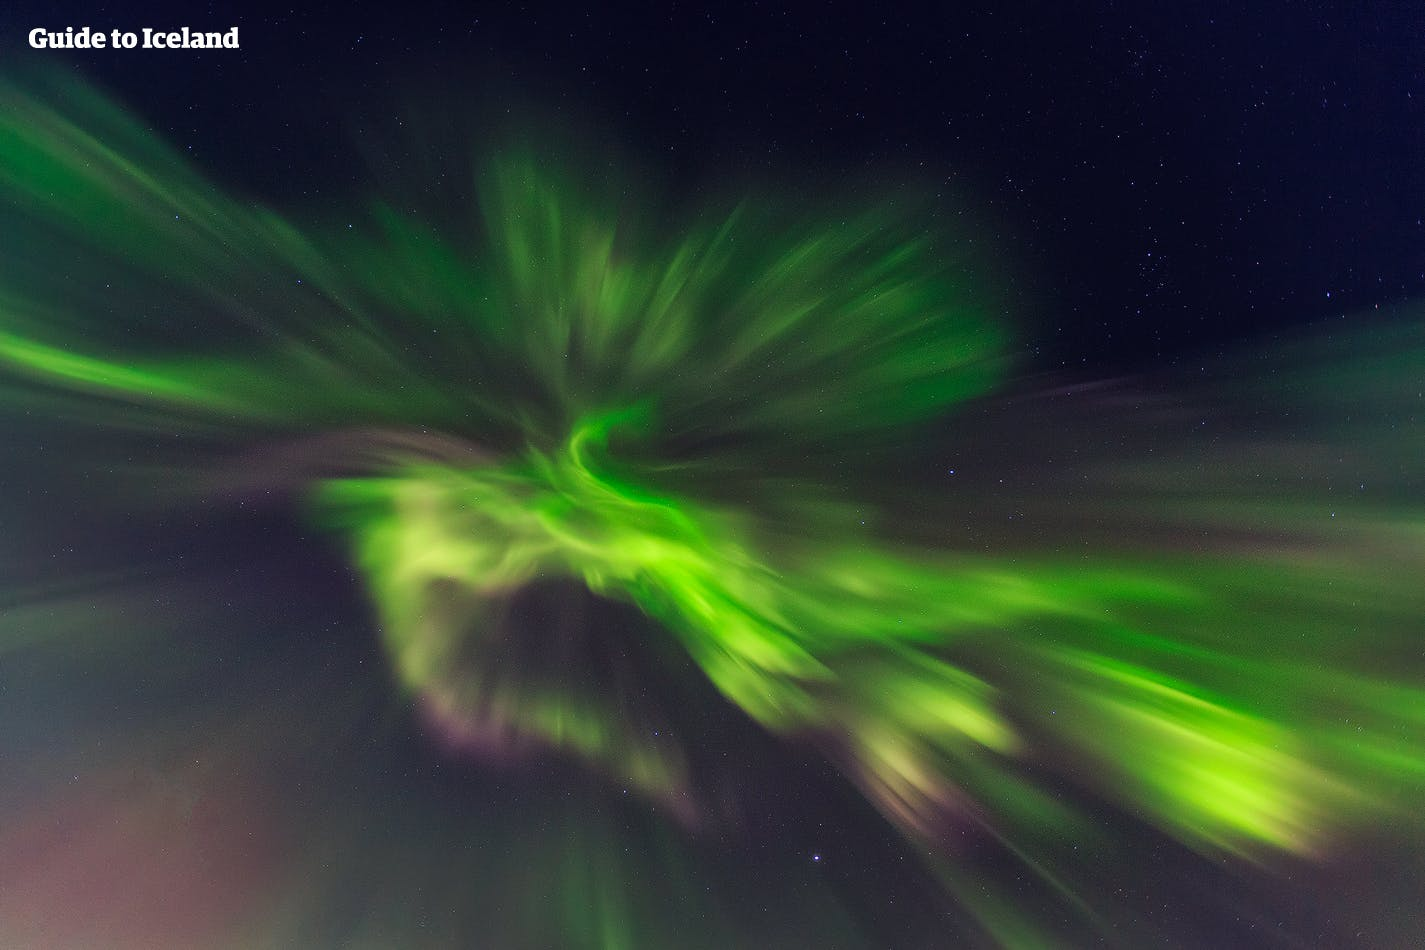 Marvel over the aurora borealis from the top of Mount Esja in West Iceland.